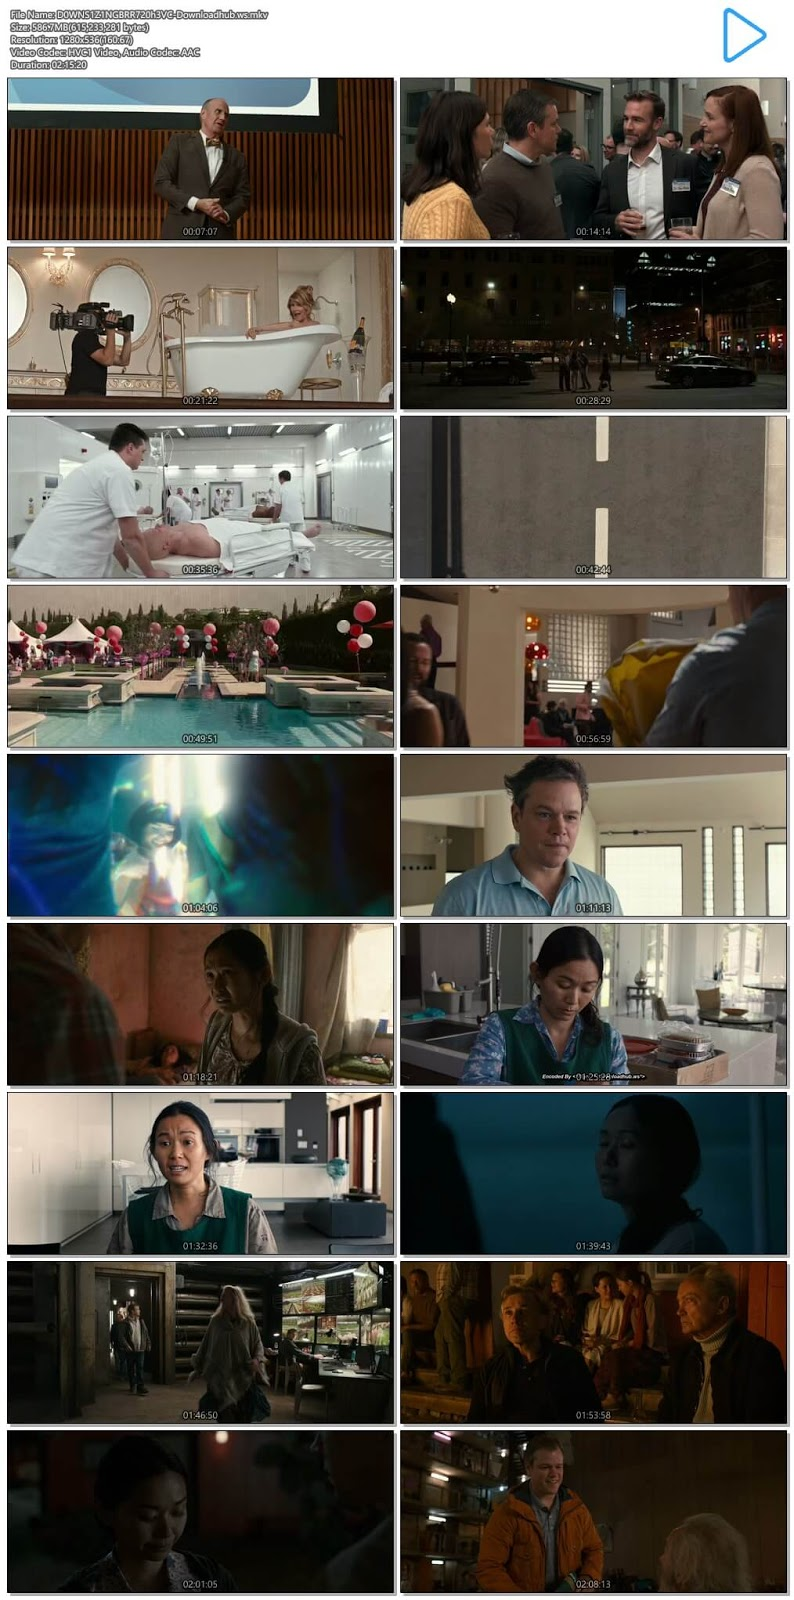 Downsizing 2017 English 720p HEVC BRRip ESubs